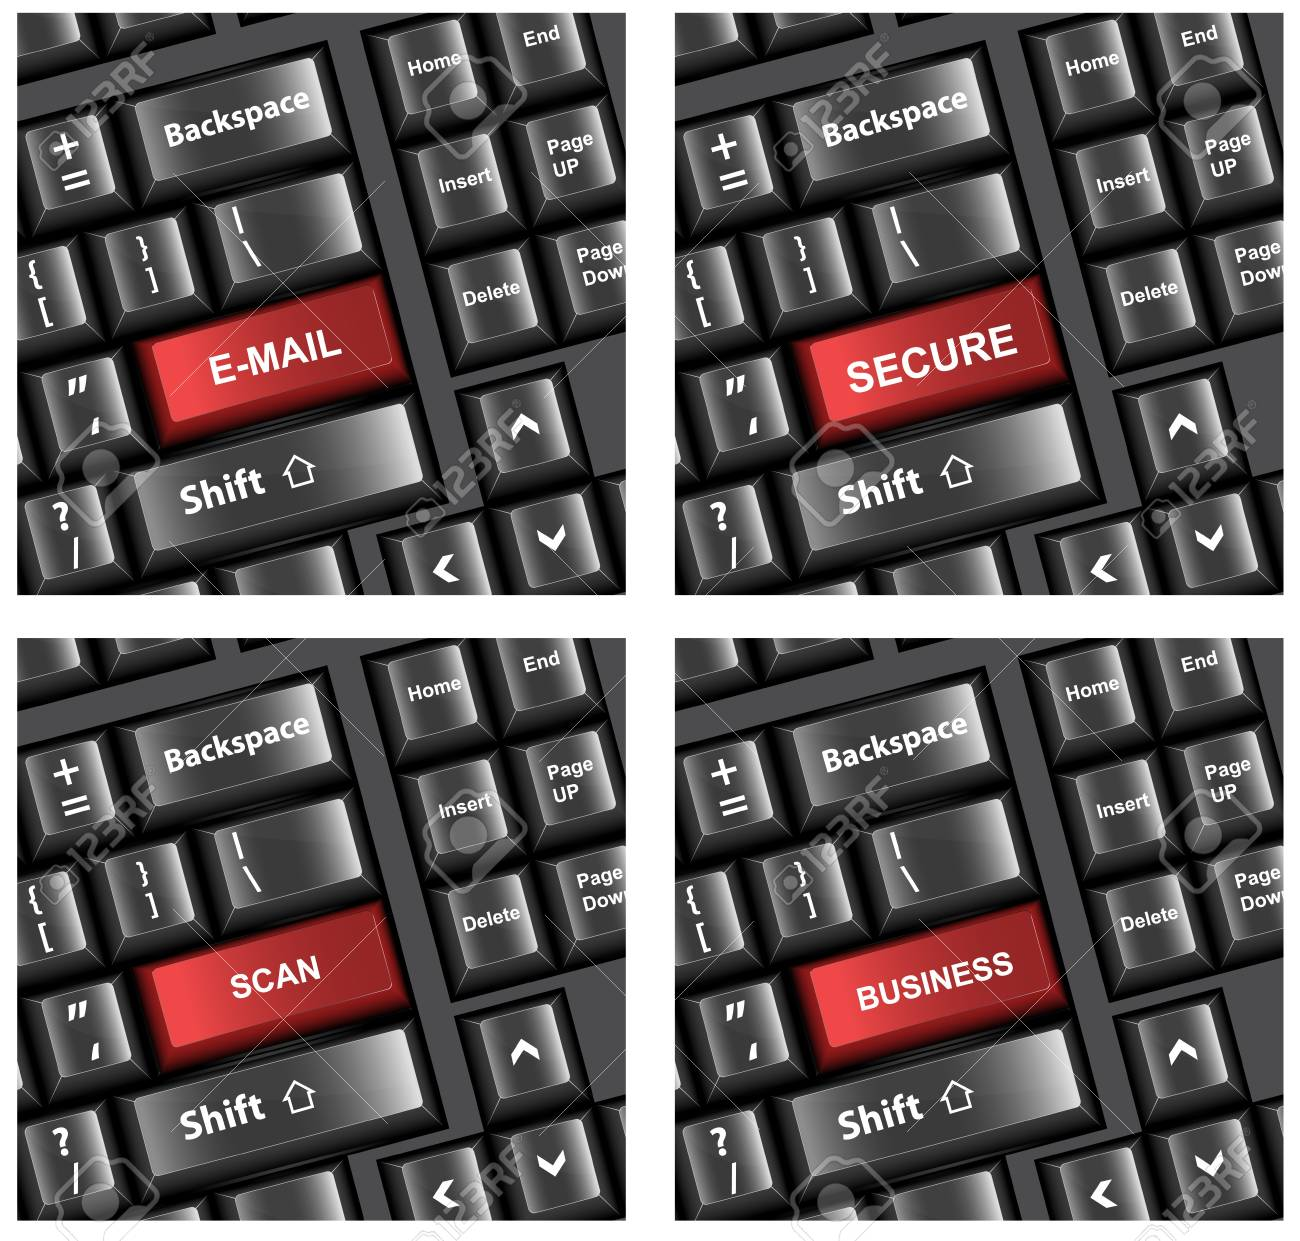 Keyboard Buttons Text Concepts Vectors Stock Vector - 15229846